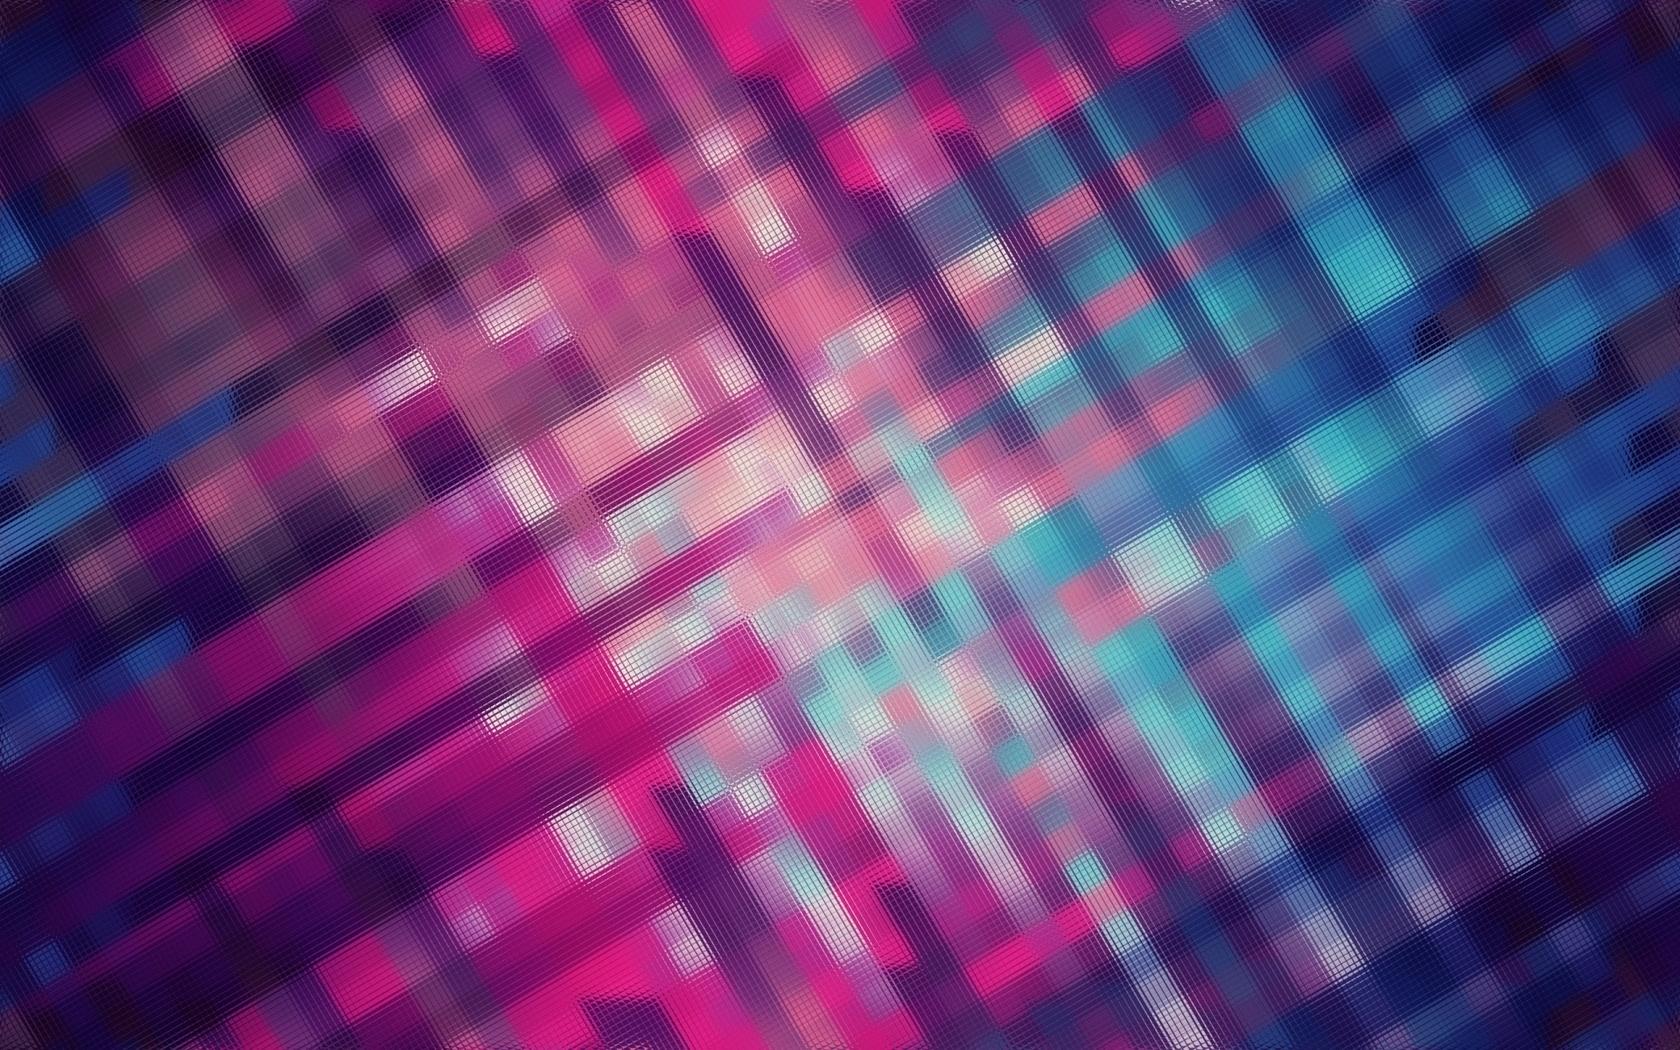 wallpaper colorful texture background, lines, abstract 1680x1050 hddownload this wallpaper